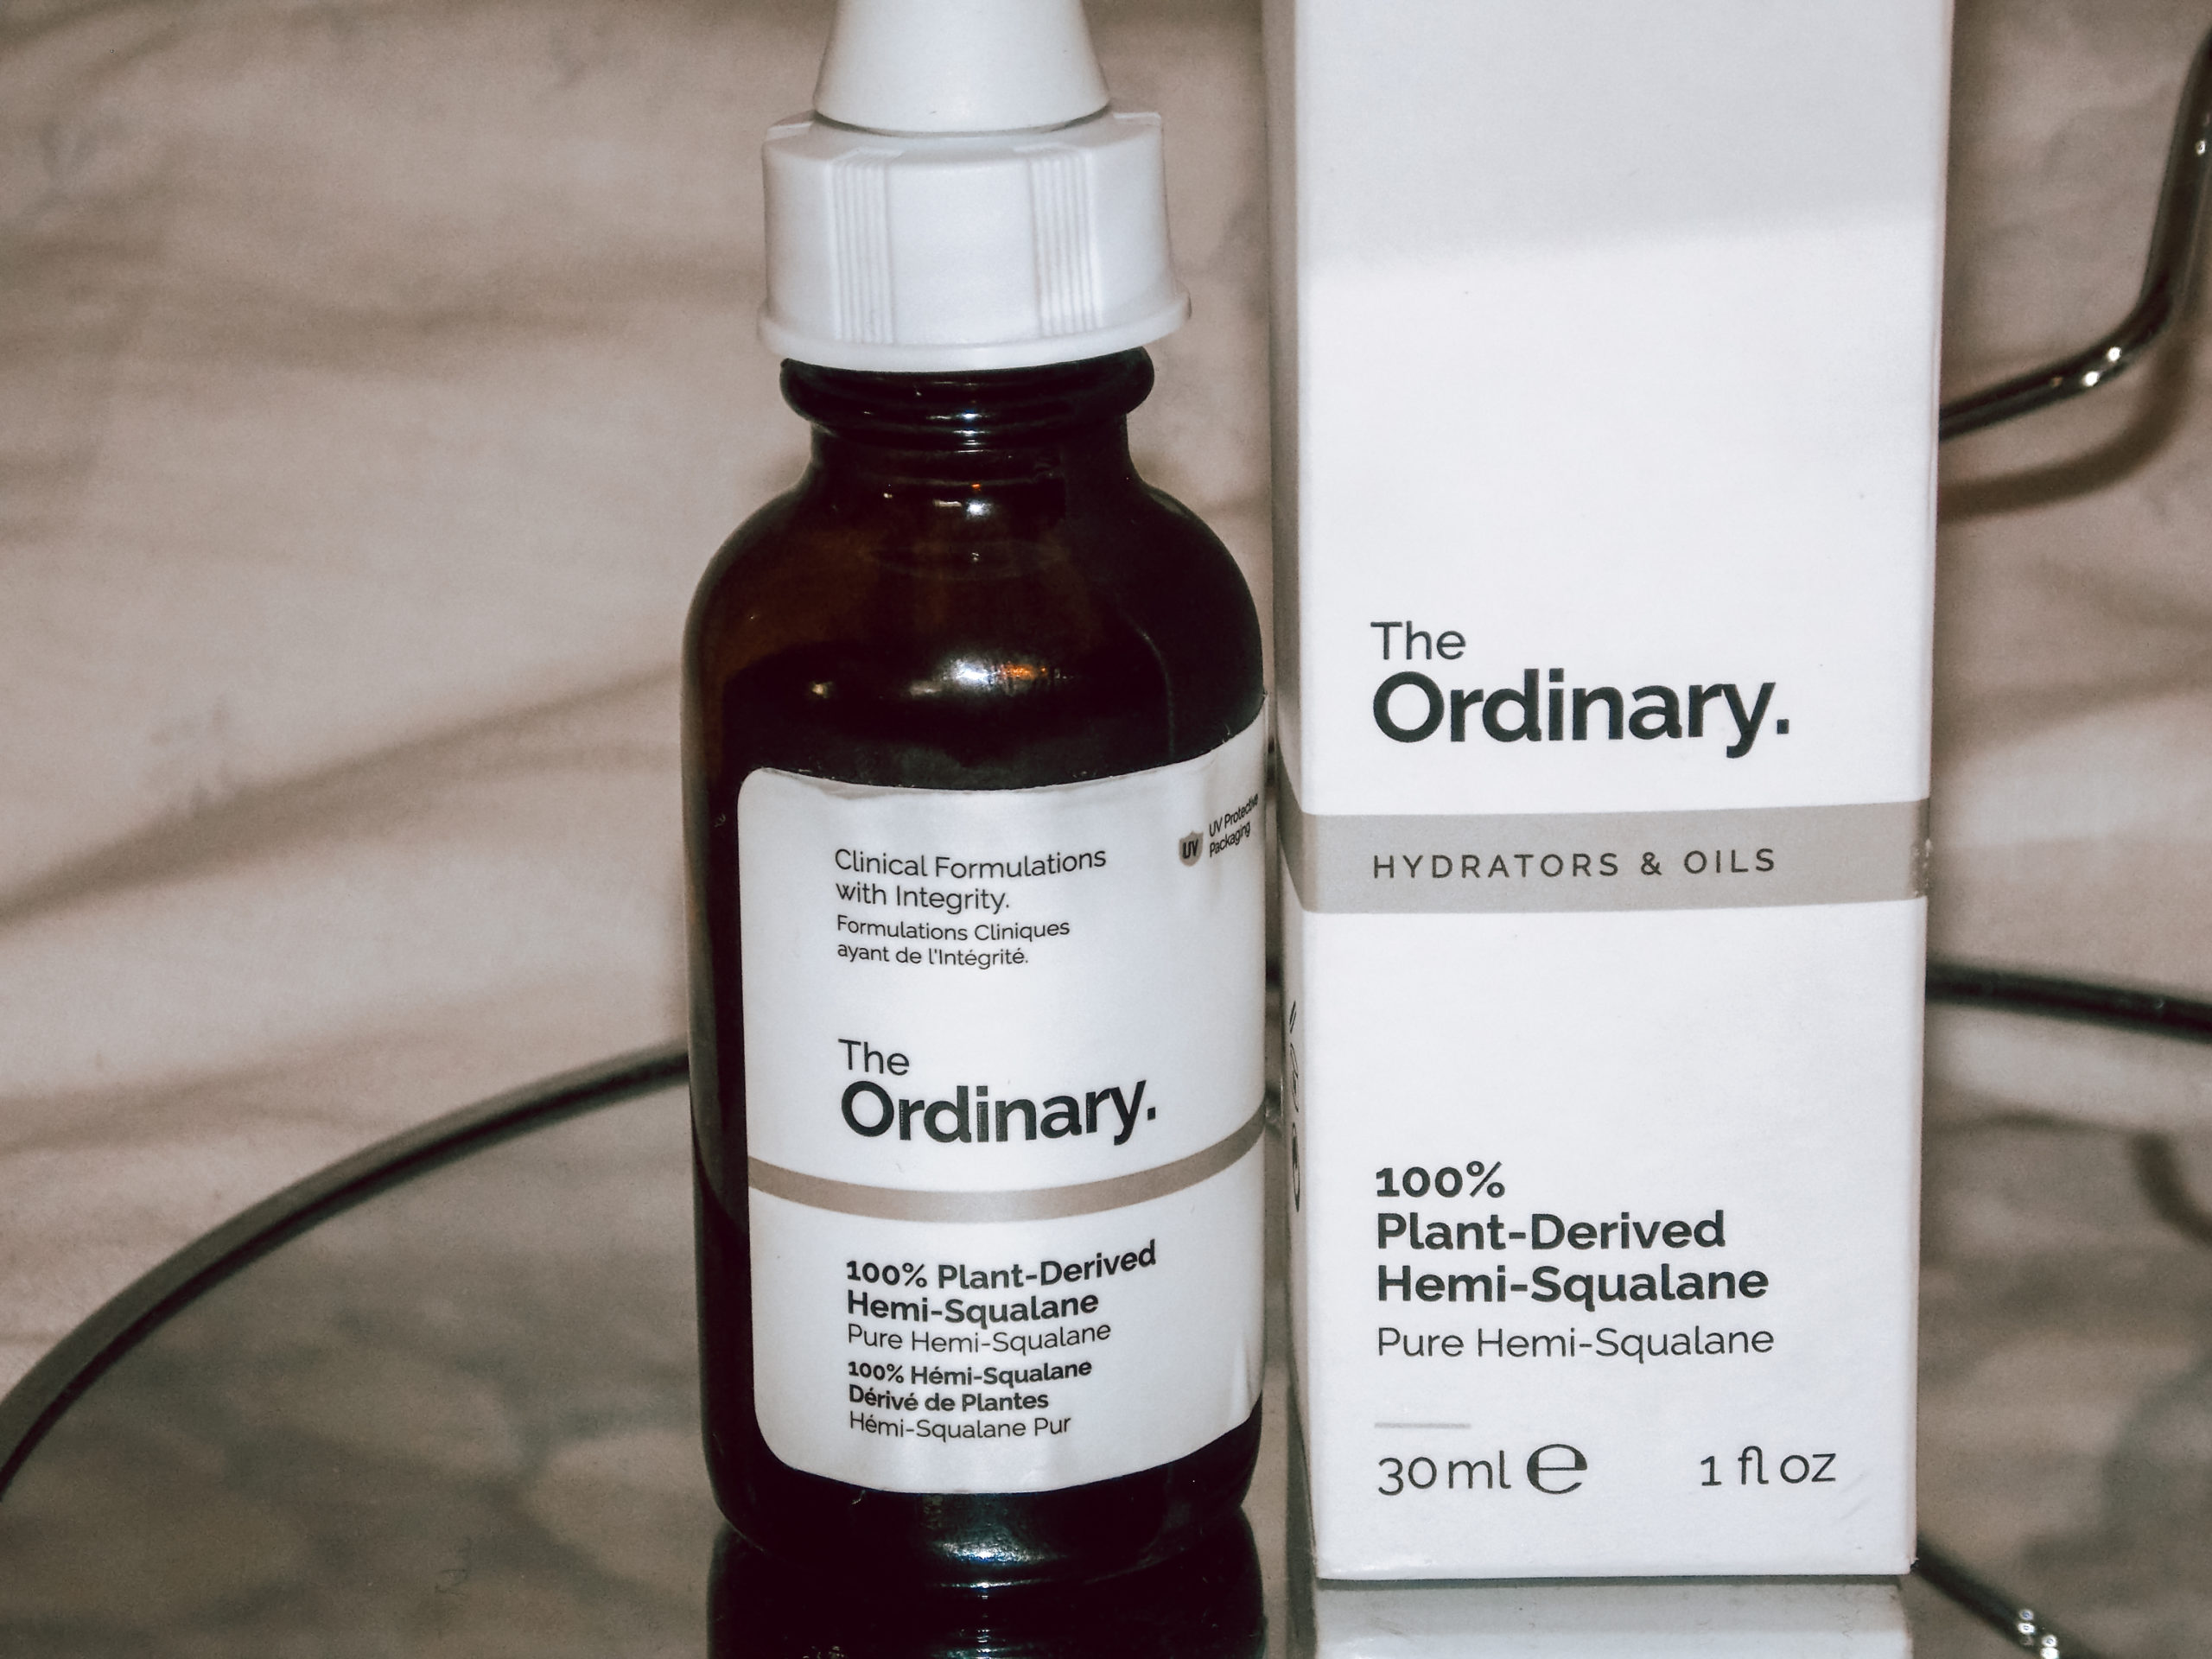 the ordinary 100% plant-derived hemi-squalane review recenzija